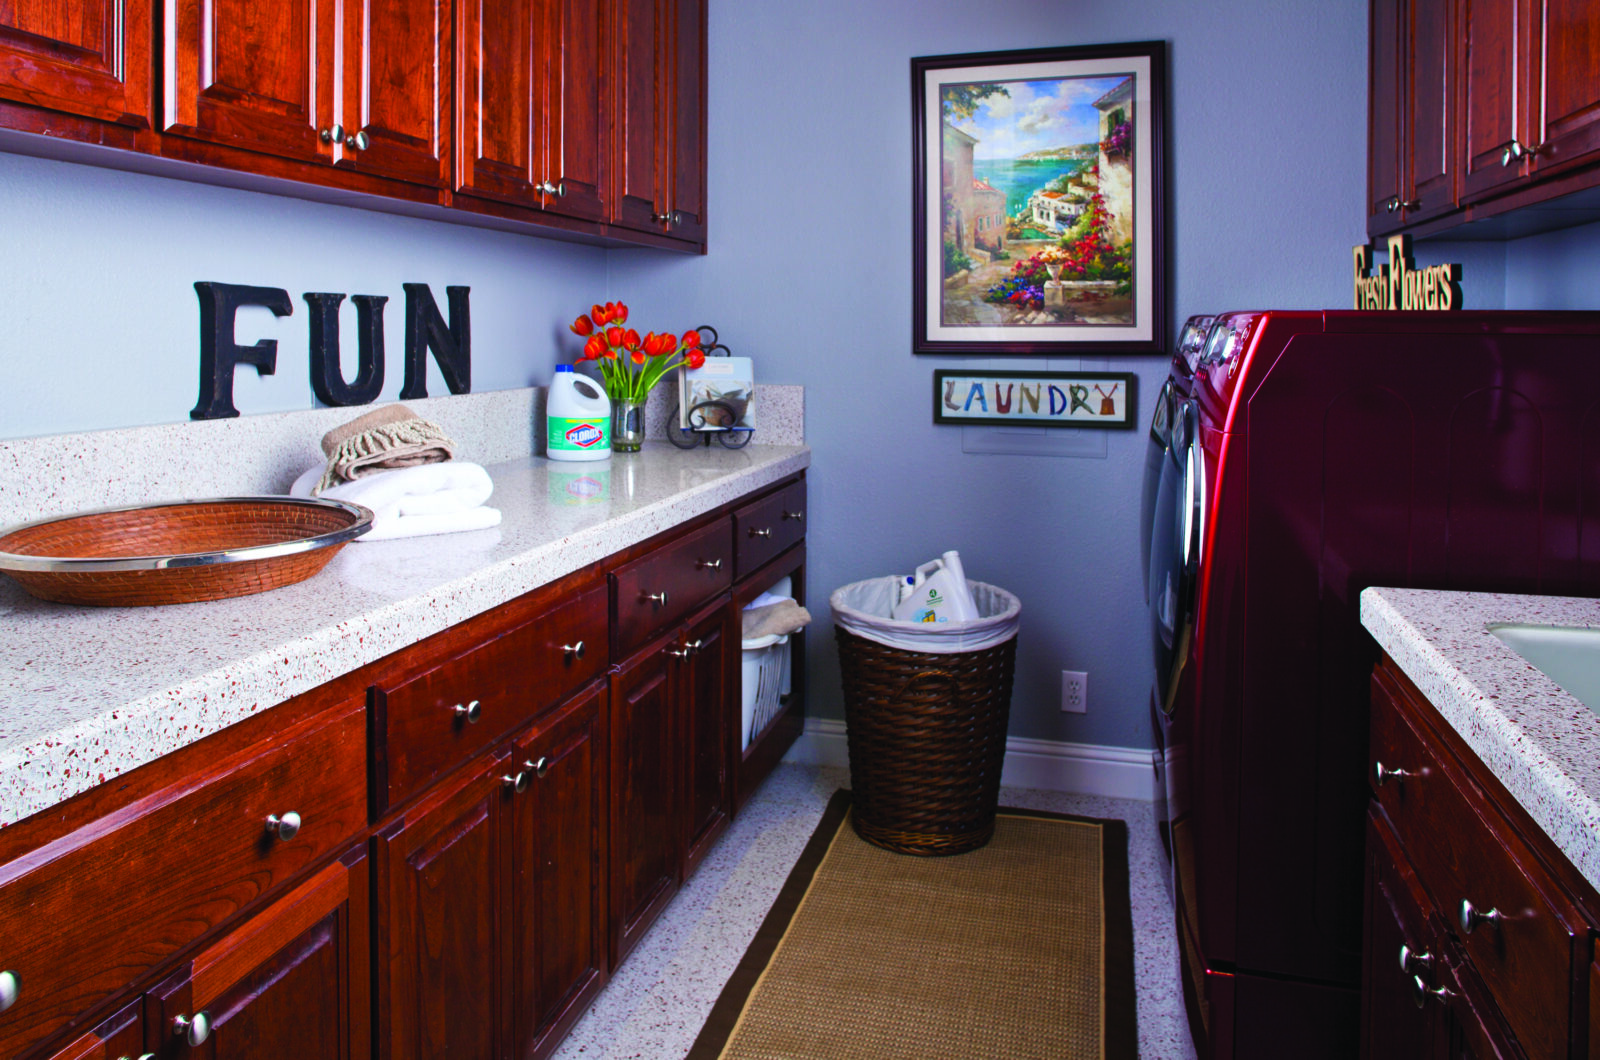 Convert an unused space into a laundry room for added value.